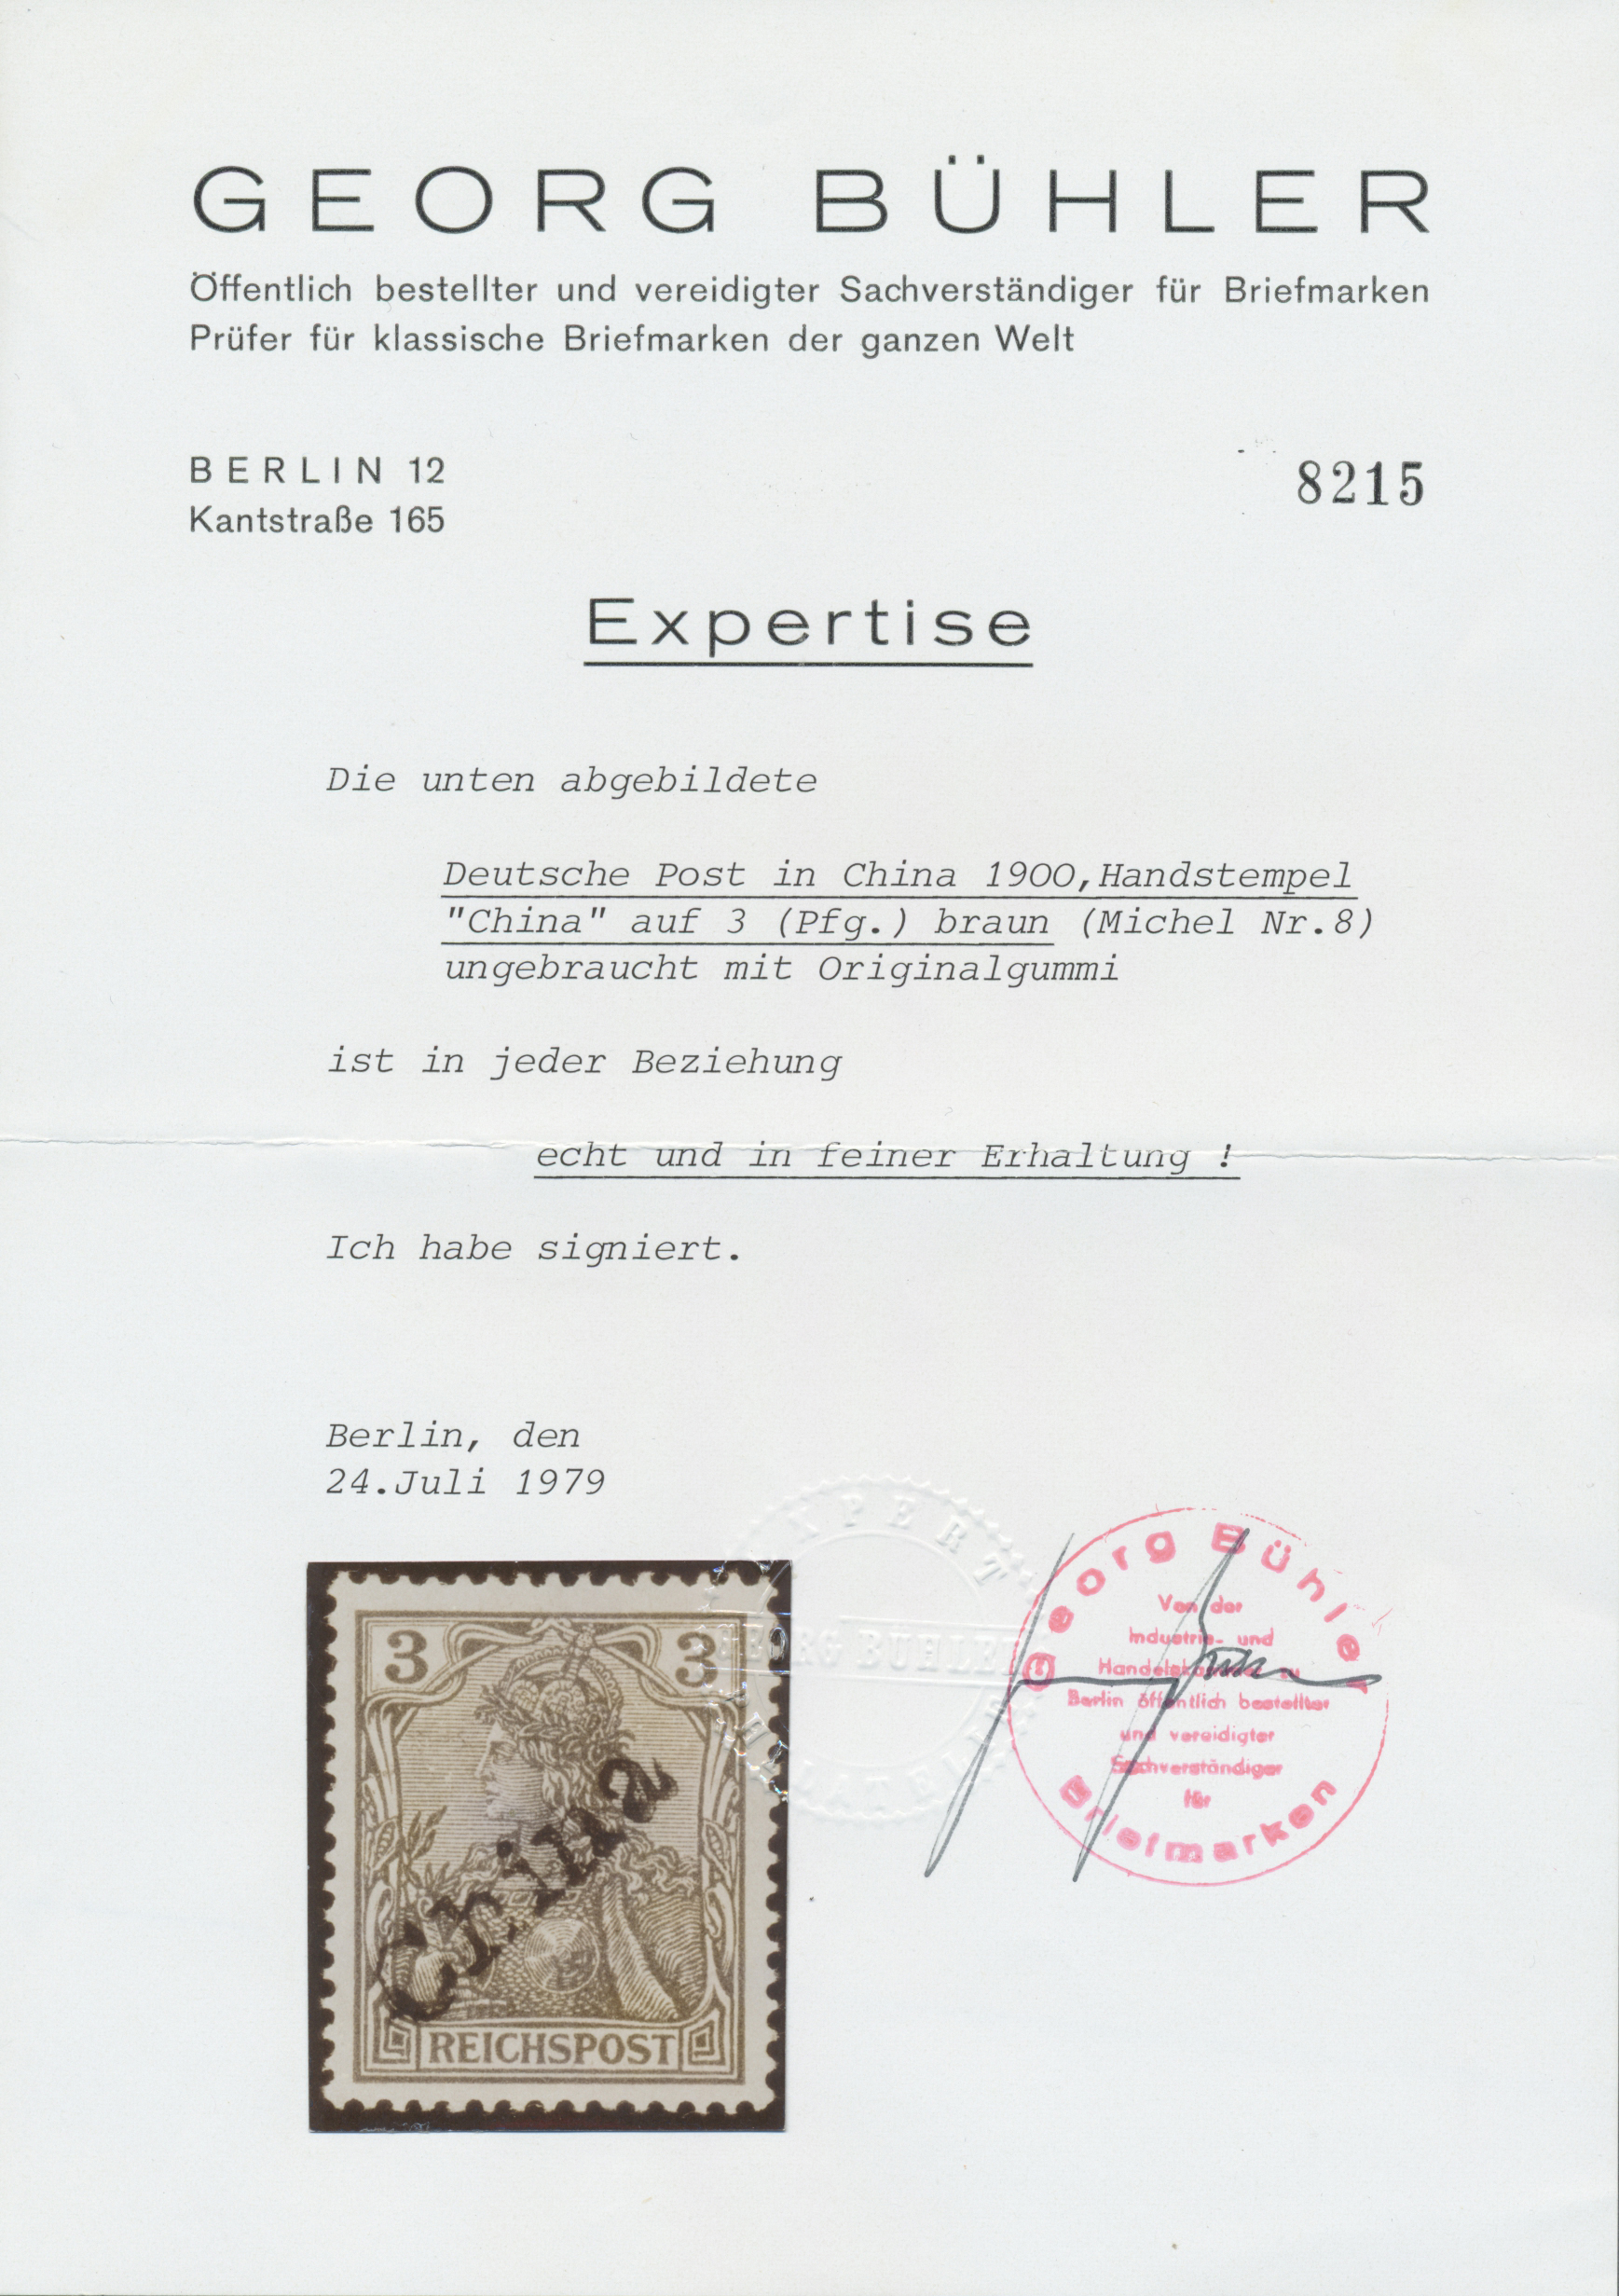 Lot 18417 - deutsche post in china  -  Auktionshaus Christoph Gärtner GmbH & Co. KG Auction #40 Germany, Picture Post Cards, Collections Overseas, Thematics